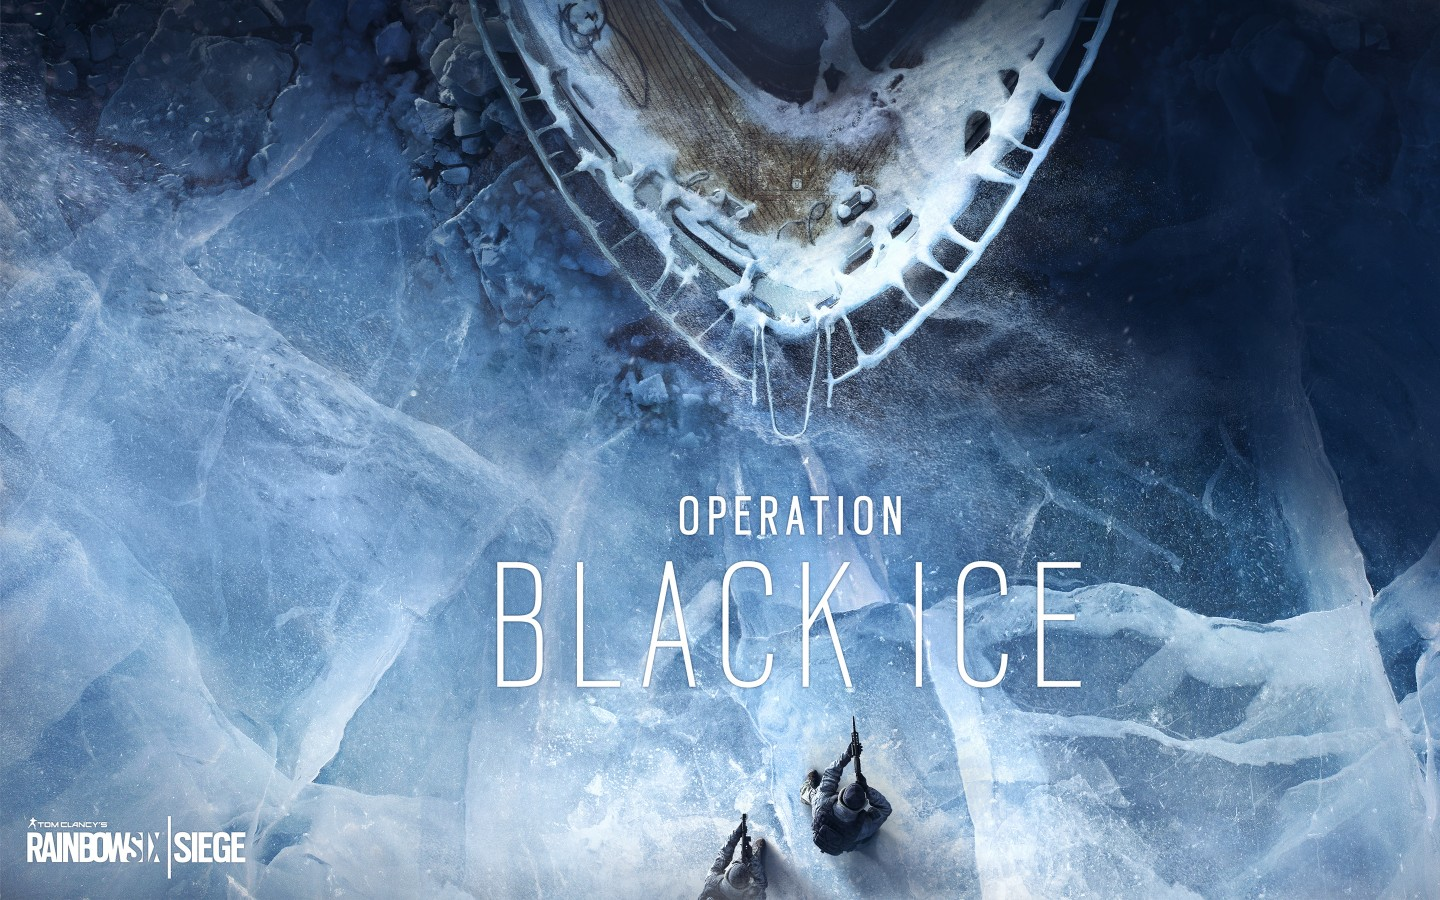 Cute Wallpapers For Android Tablets Rainbow Six Siege Operation Black Ice Wallpapers Hd